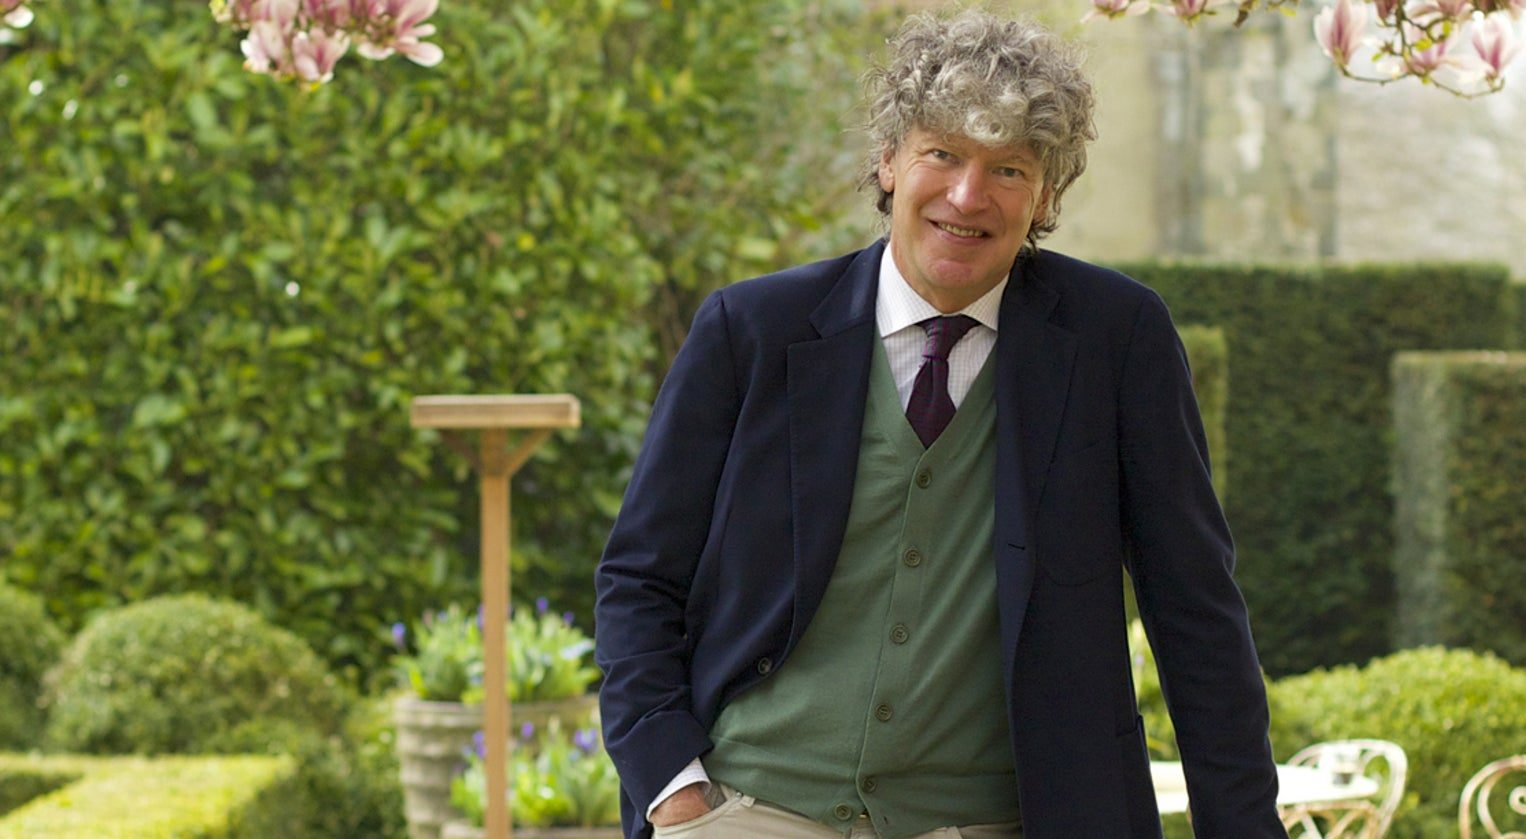 Tim Parker will step down in October after seven years at the National Trust